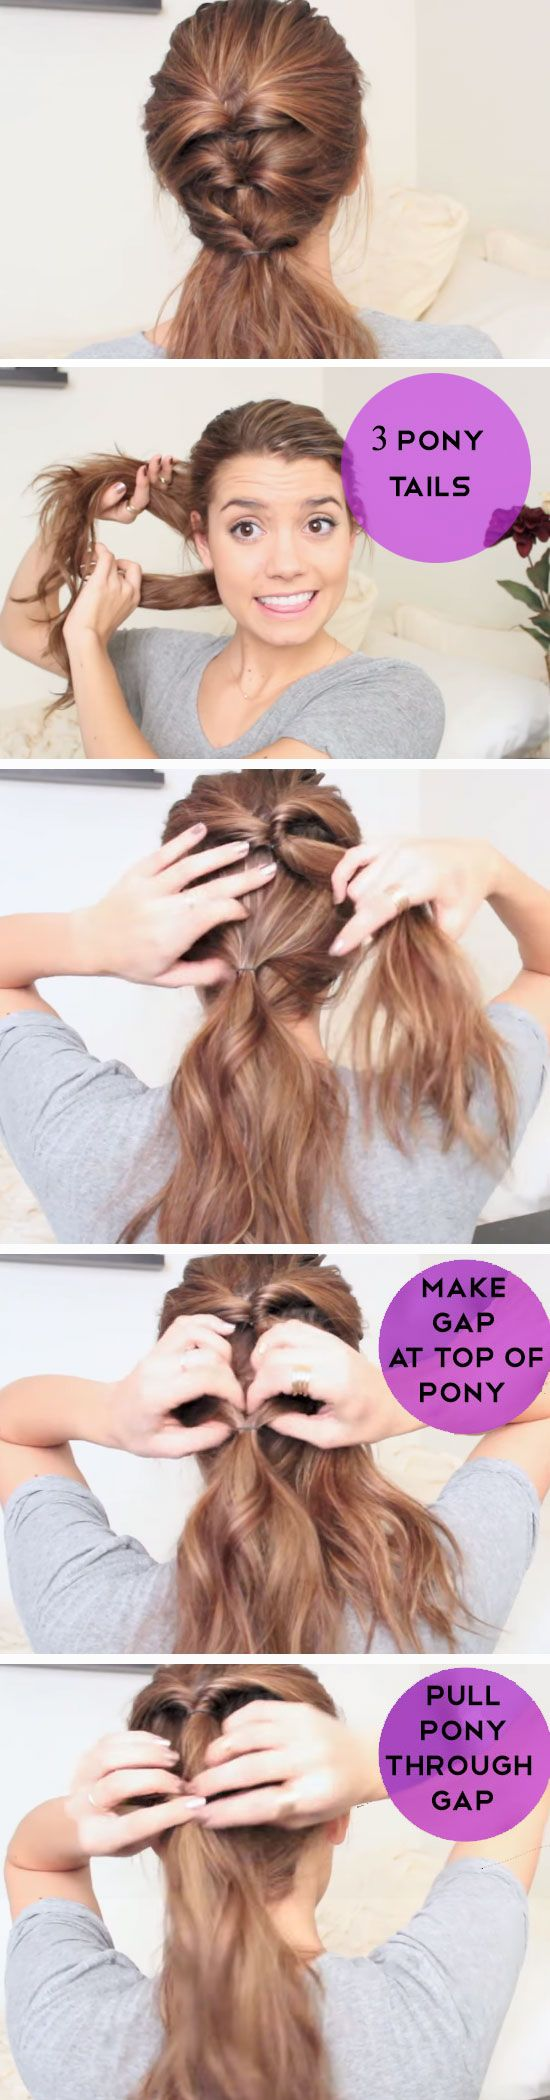 pin hot hair ideas